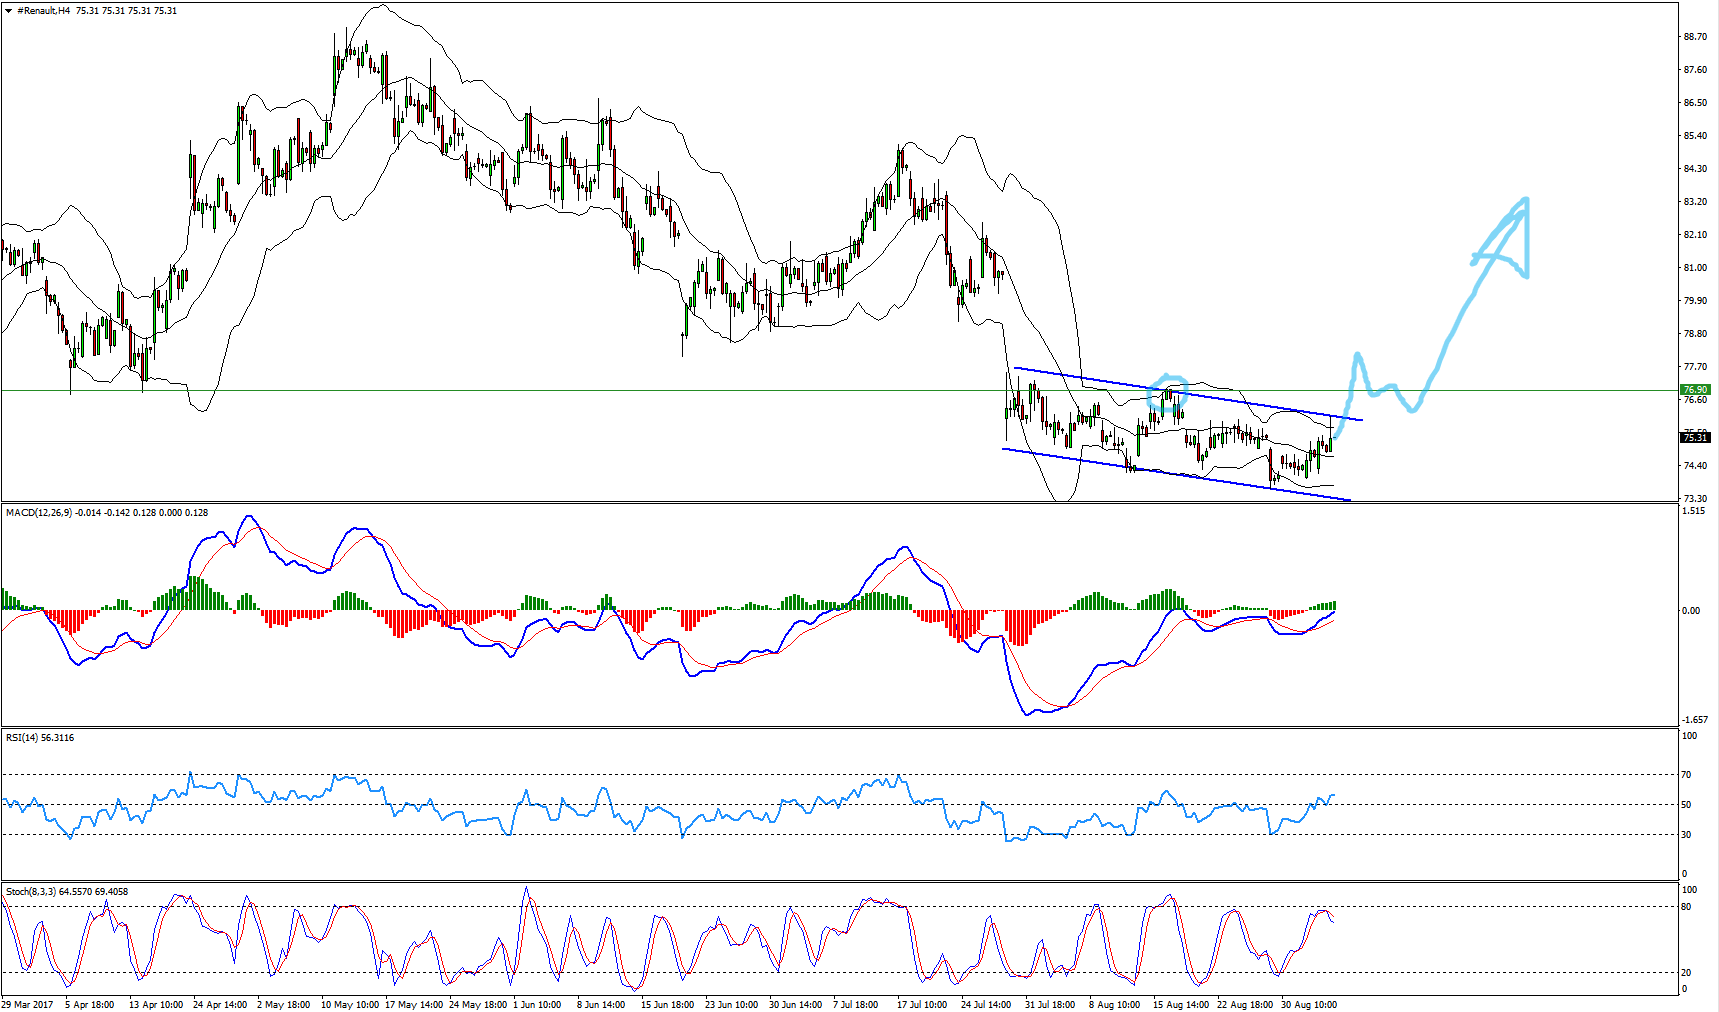 Renault Buy Opportunity Forming